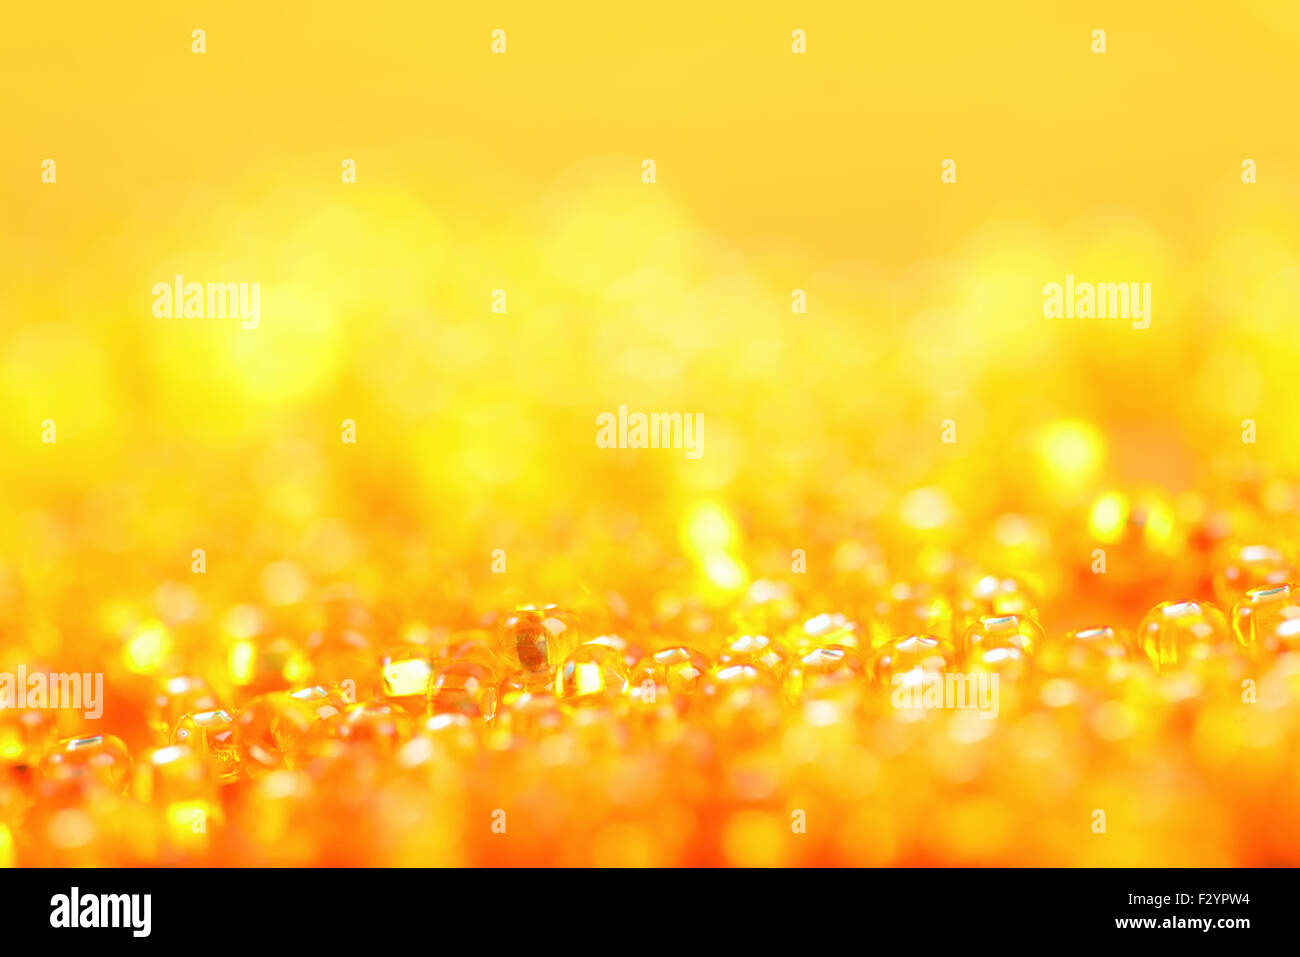 Yellow shine Christmas golden background for your design - Stock Image